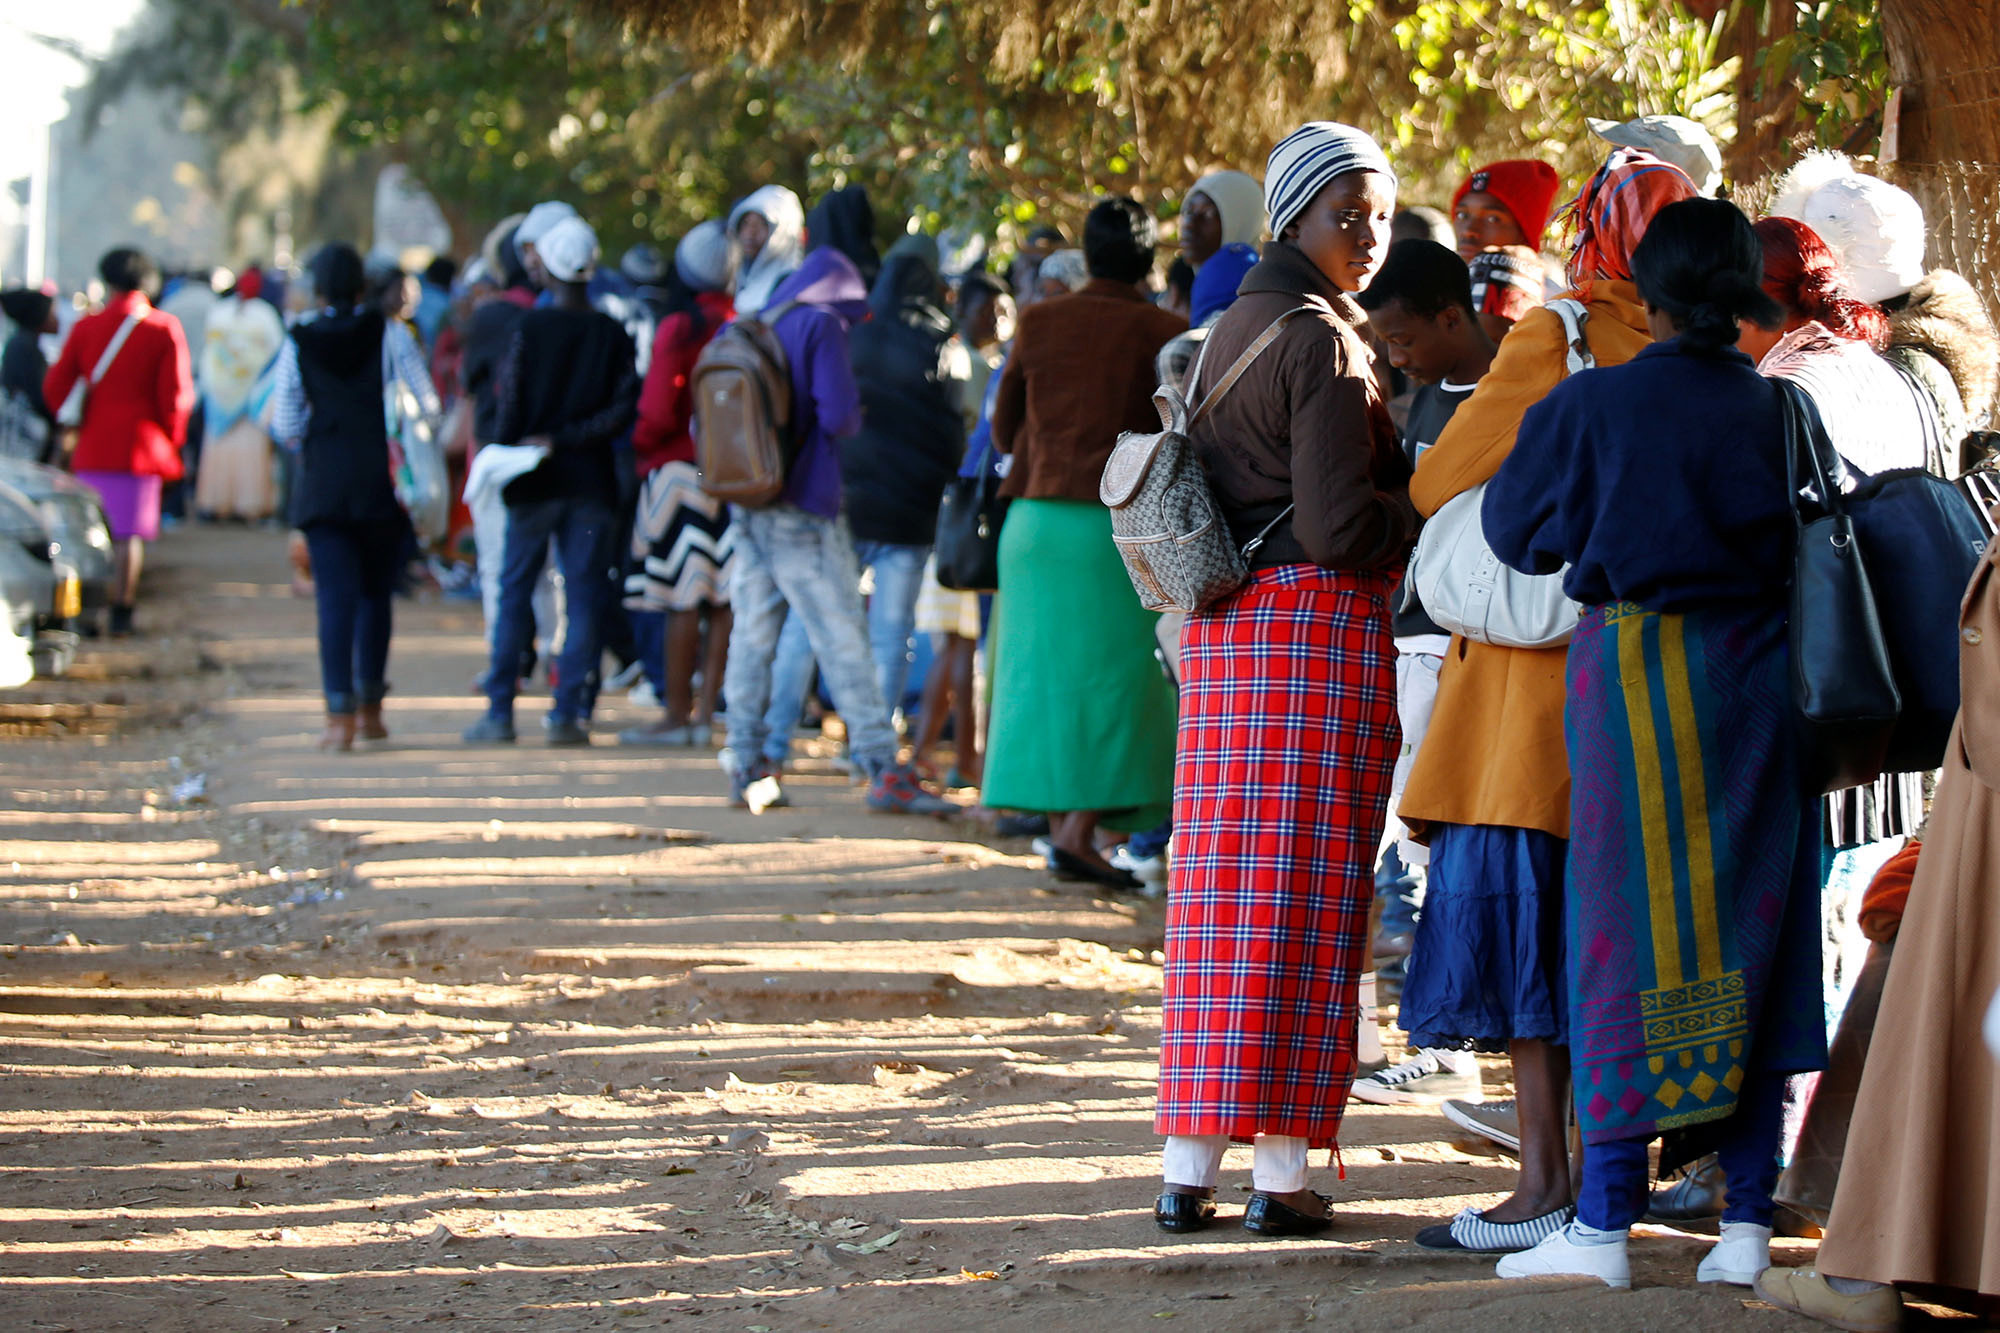 Zimbabweans queue outside a Home Affairs Department office to apply for passports in Harare, Zimbabwe.